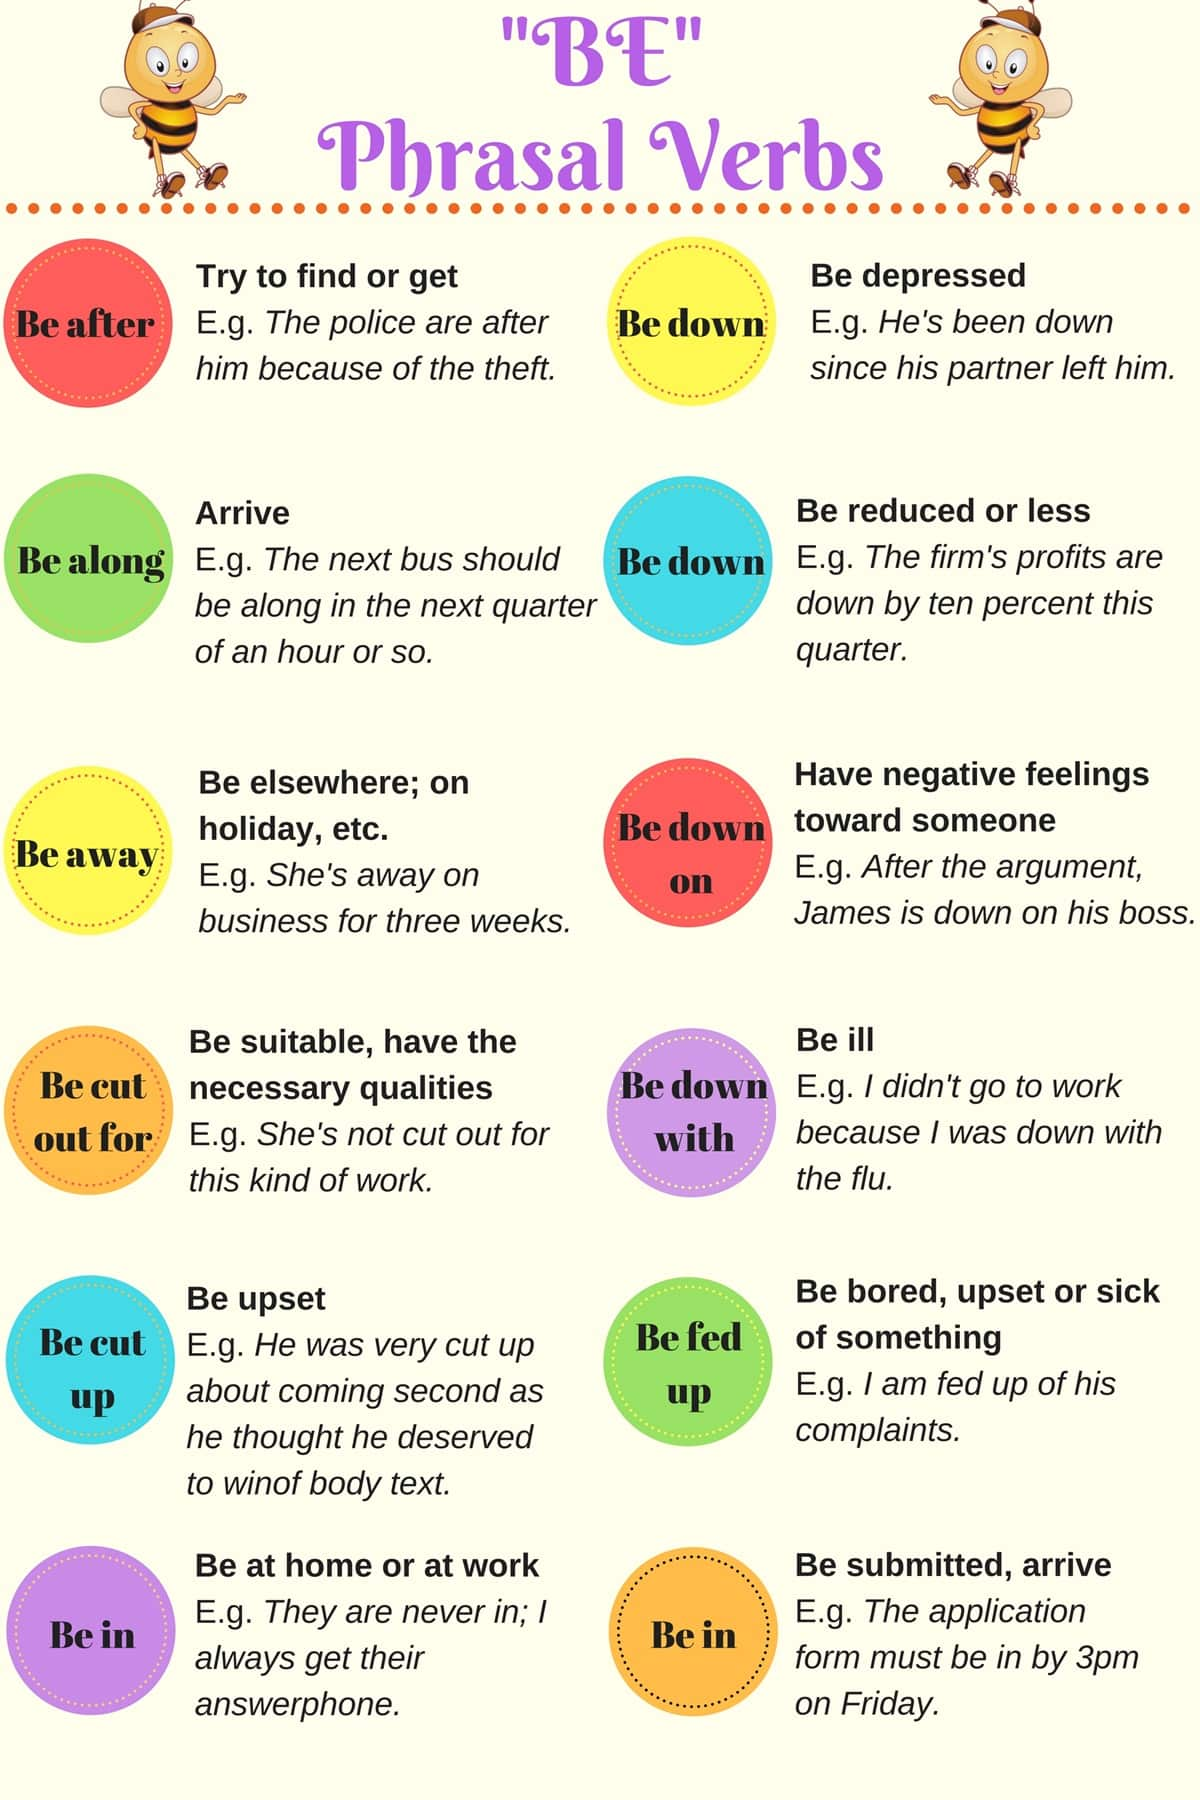 100+ of the Most Useful Phrasal Verbs in English (With Meaning & Examples) 3